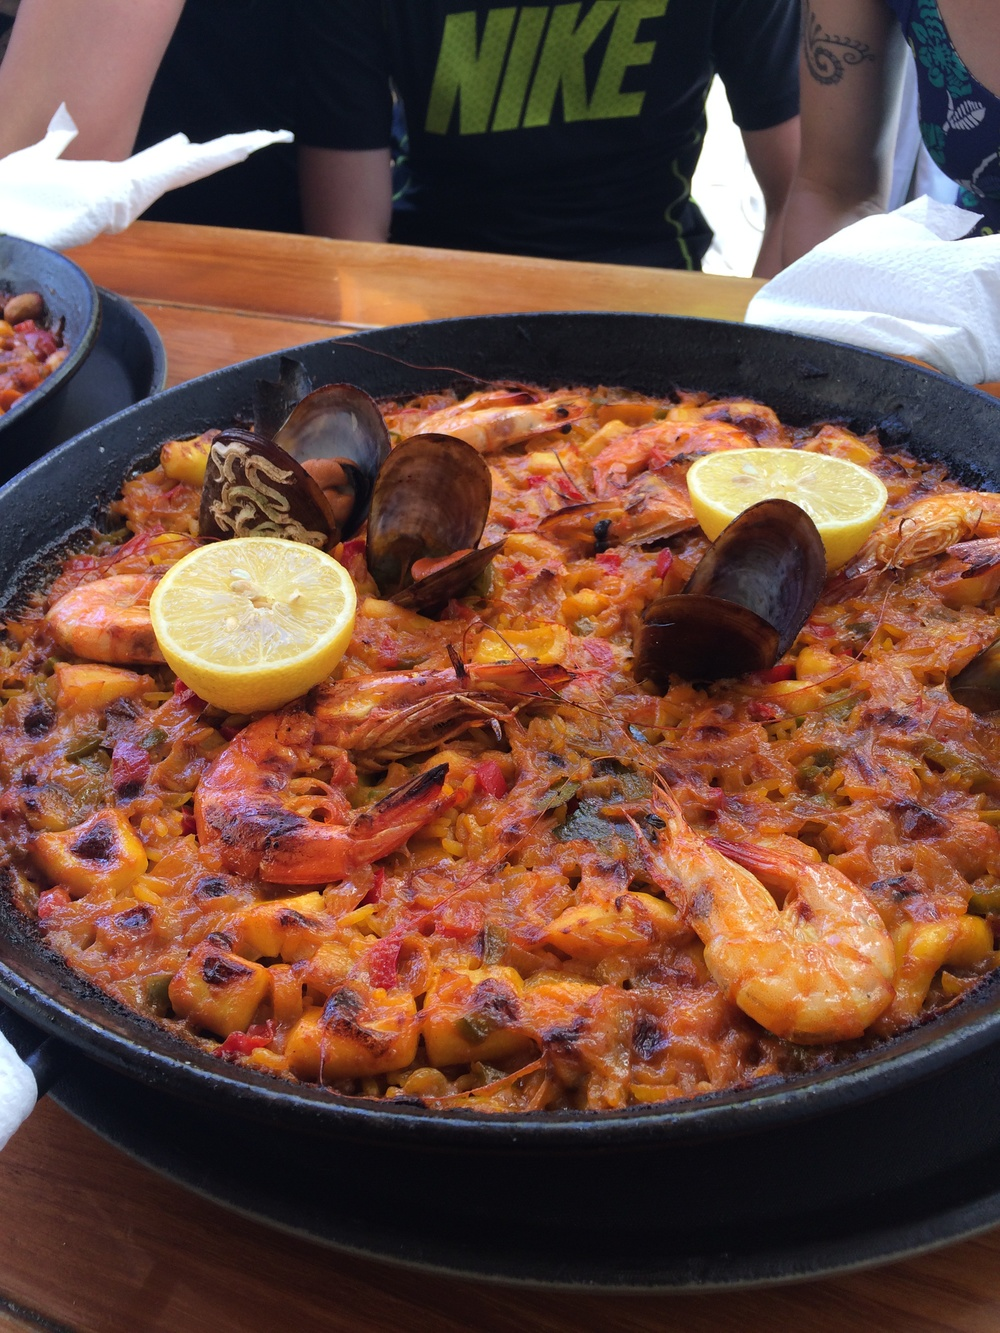 decent paella too